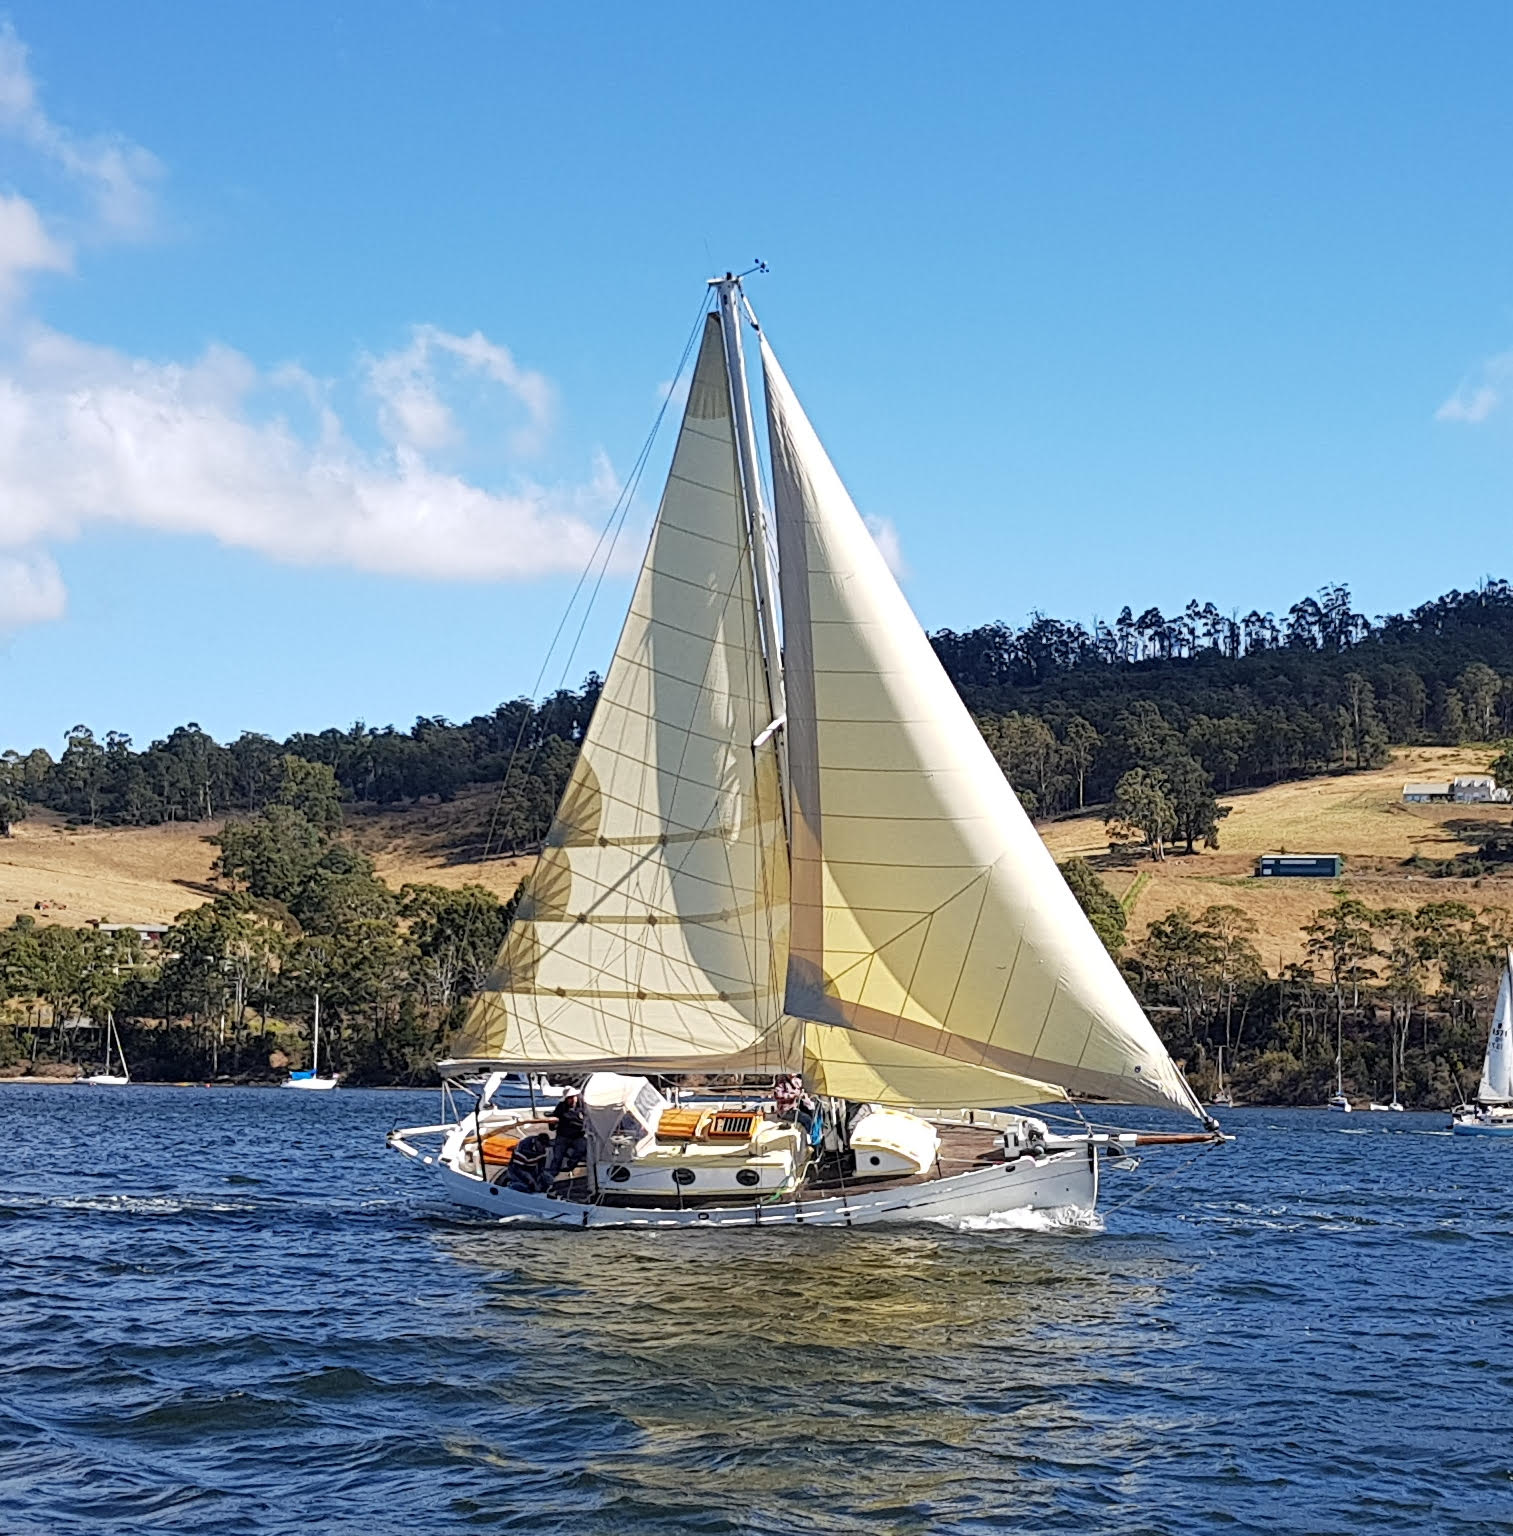 April of Cygnet competing in the Port Cygnet Yacht Club Regatta last weekend. Photo Jessica Coughlin.